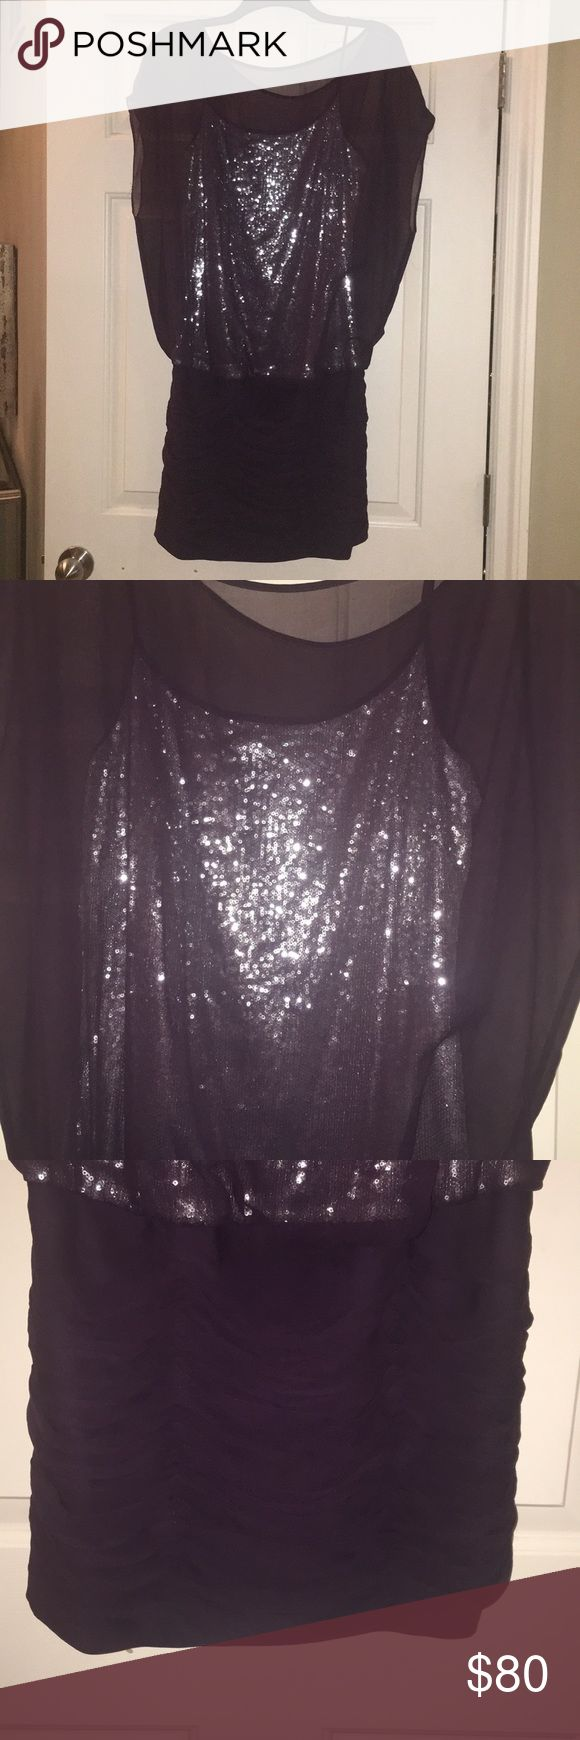 Beautiful plum with silver sequin cocktail dress. Sexy yet flattering around the mid section. Chiffon over silver sequin spaghetti strap styled top with chiffon rouched skirt. Chiffon top and tank are connected to the rouched bottom. Flowy on top and more fitted in the skirt. Covers upper arms and midsection without being frumpy. Only worn once. In excellent condition. Adrianna Papell Dresses Mini